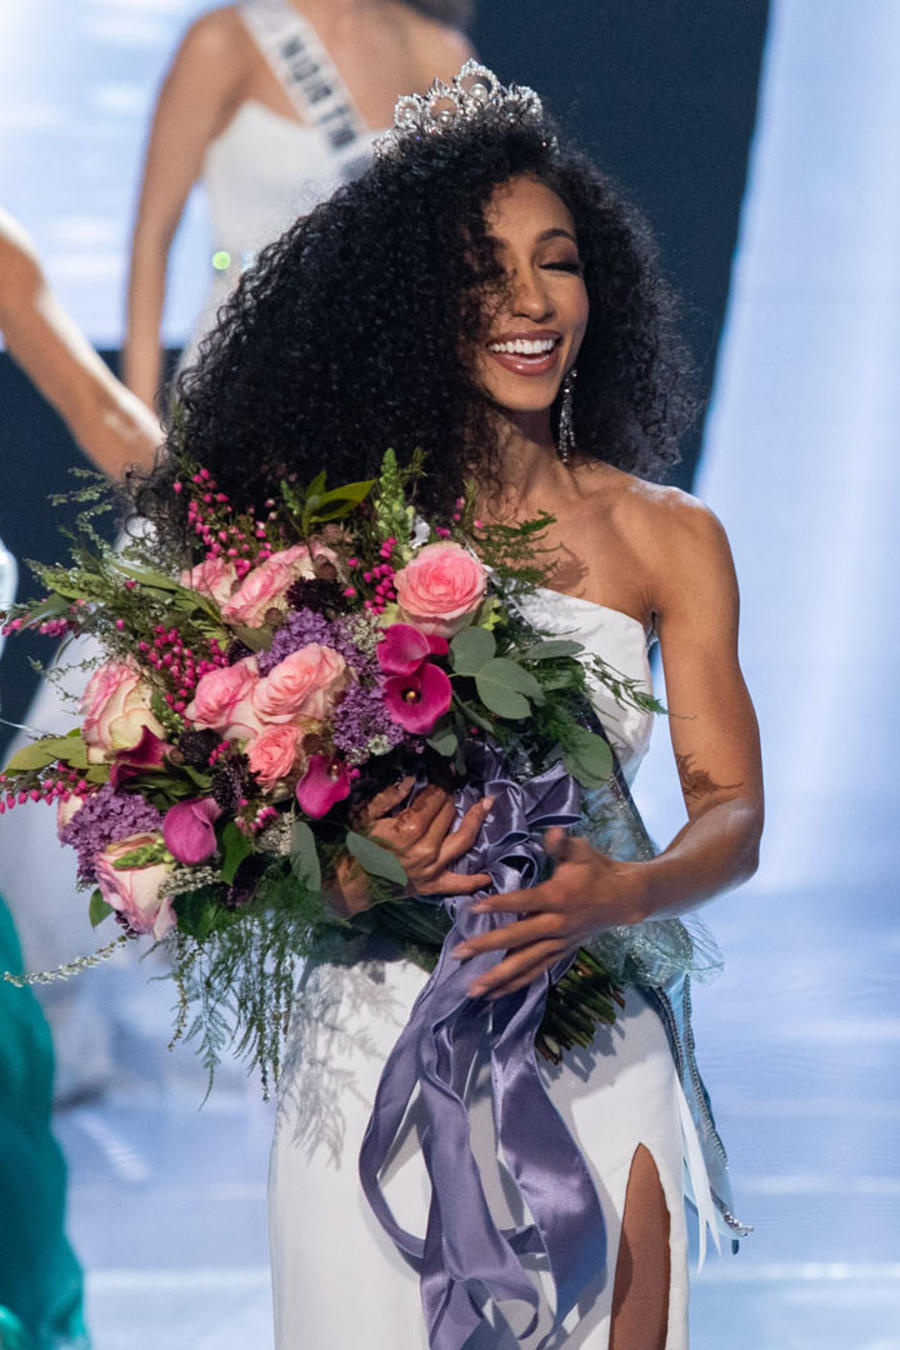 Cheslie Kryst, Miss USA 2019